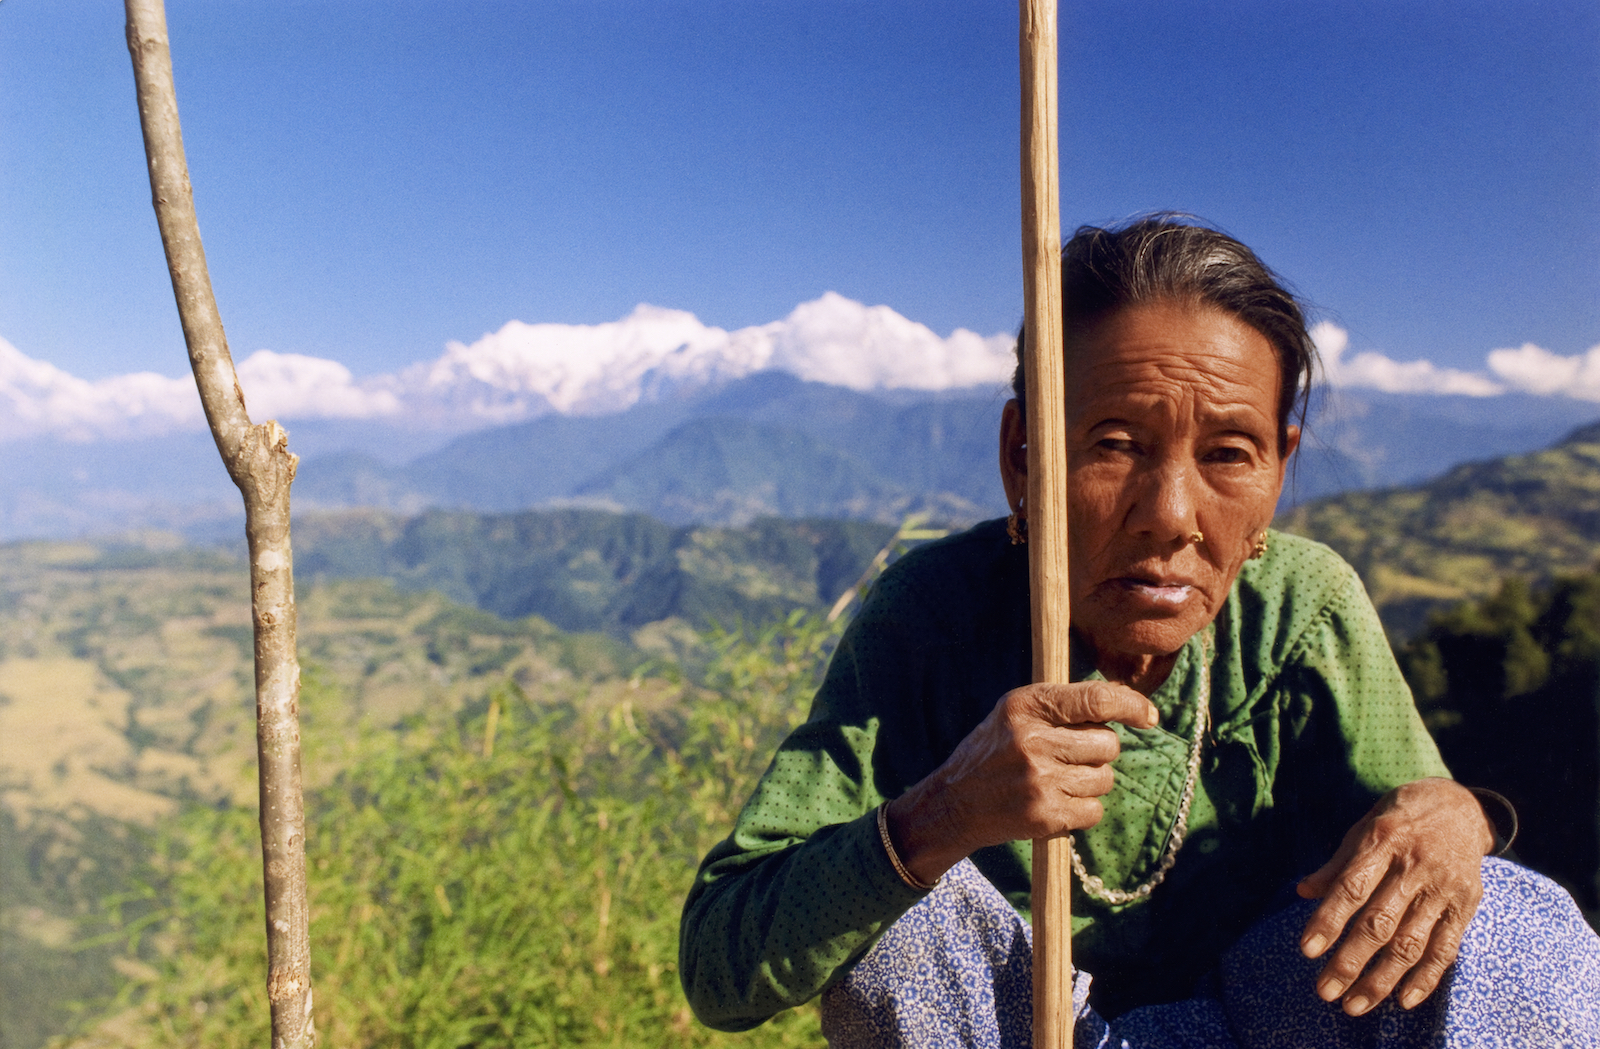 Gurung matriarch on the Royal Trek in Nepal.  Image by New Orleans based travel photographer, Marc Pagani